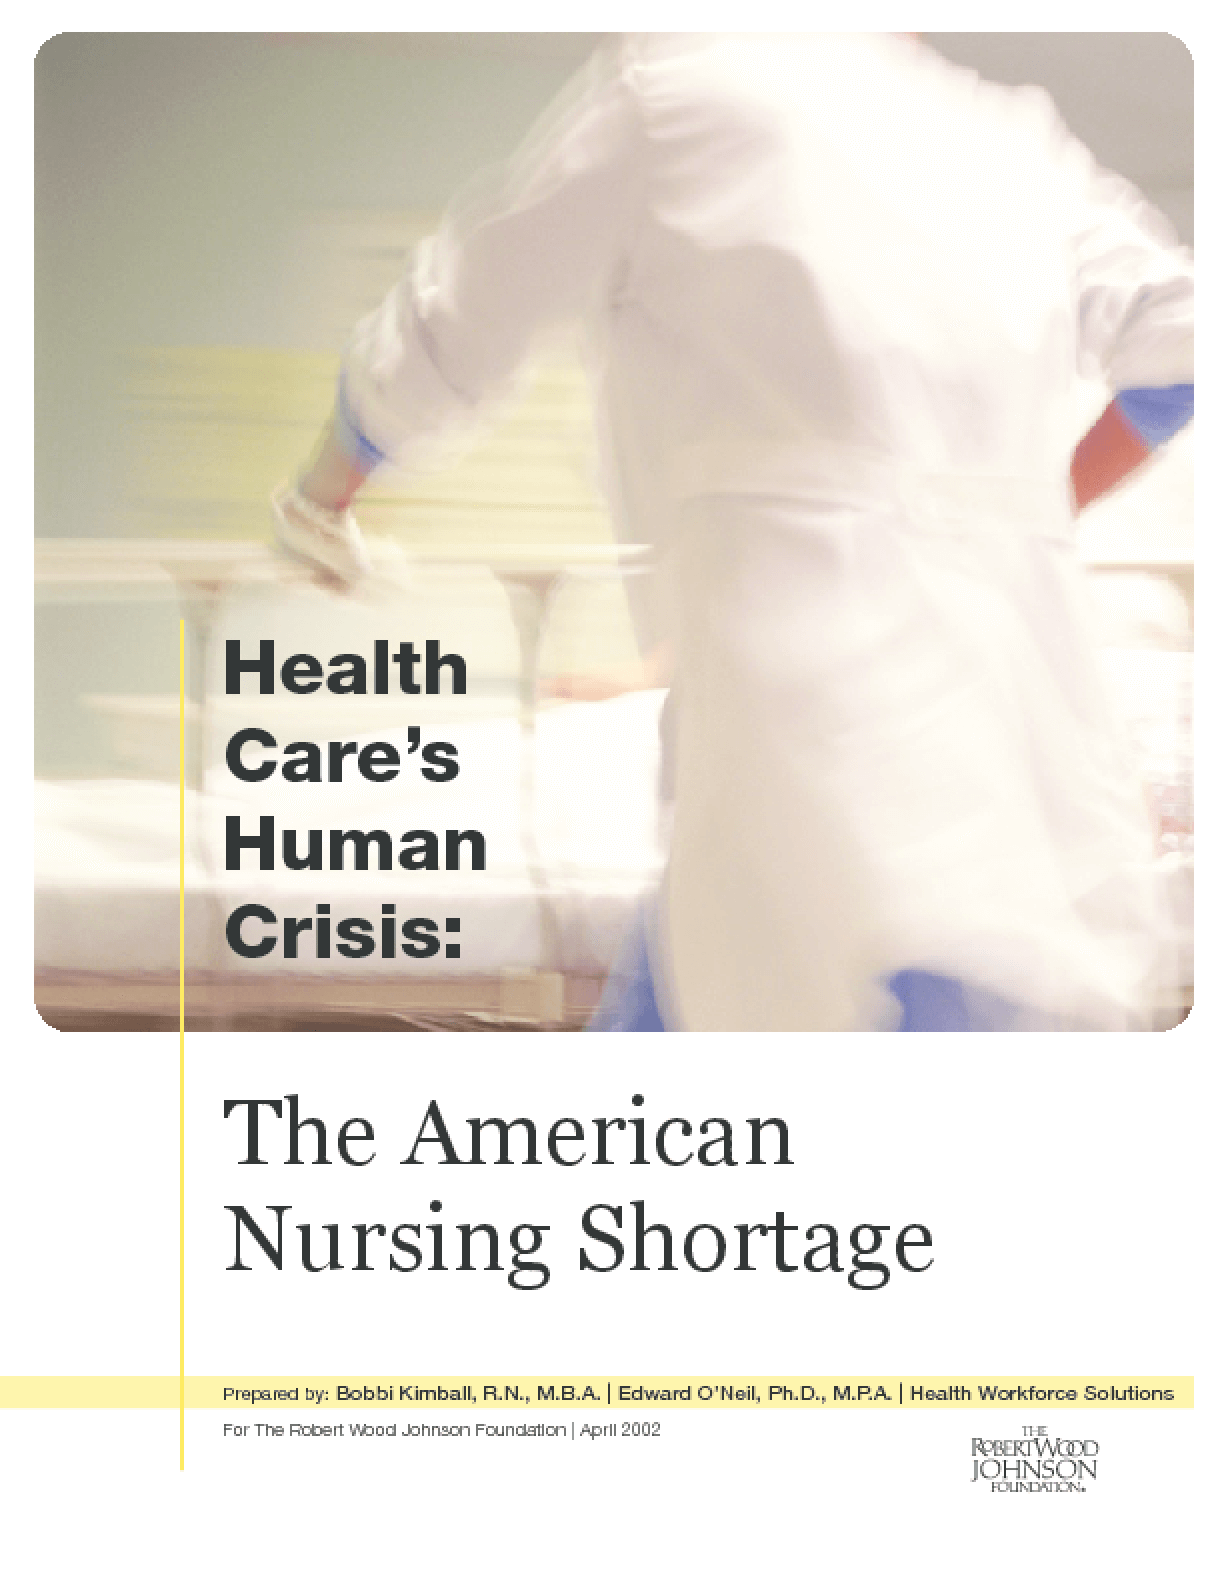 Health Care's Human Crisis: The American Nursing Shortage